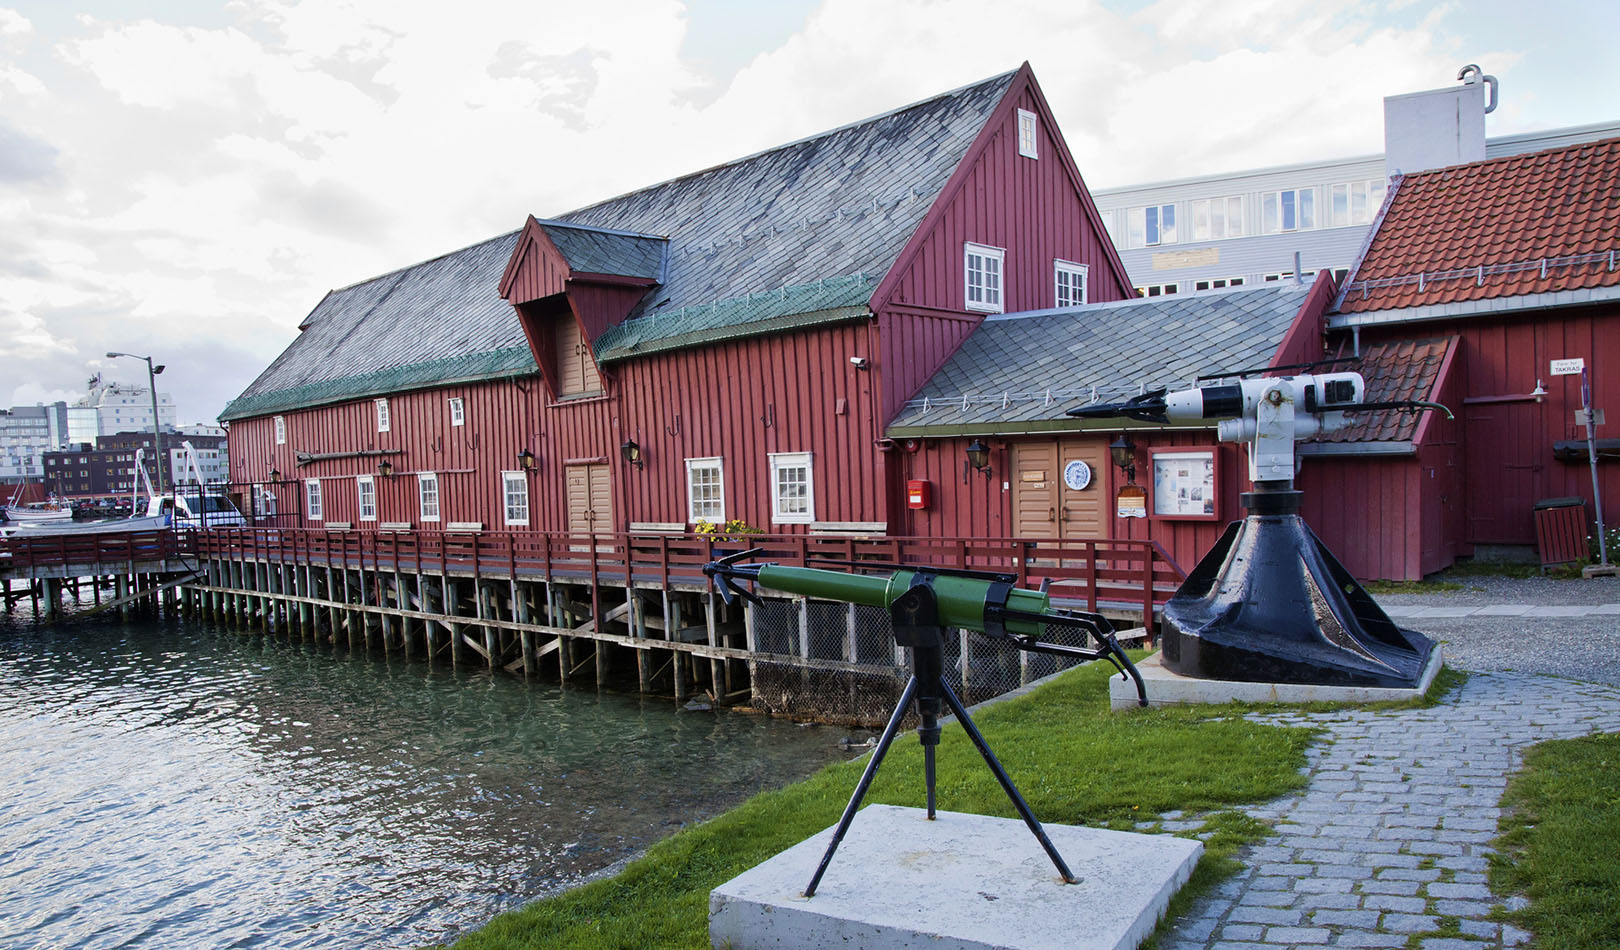 The Polar Museum by the harbour.